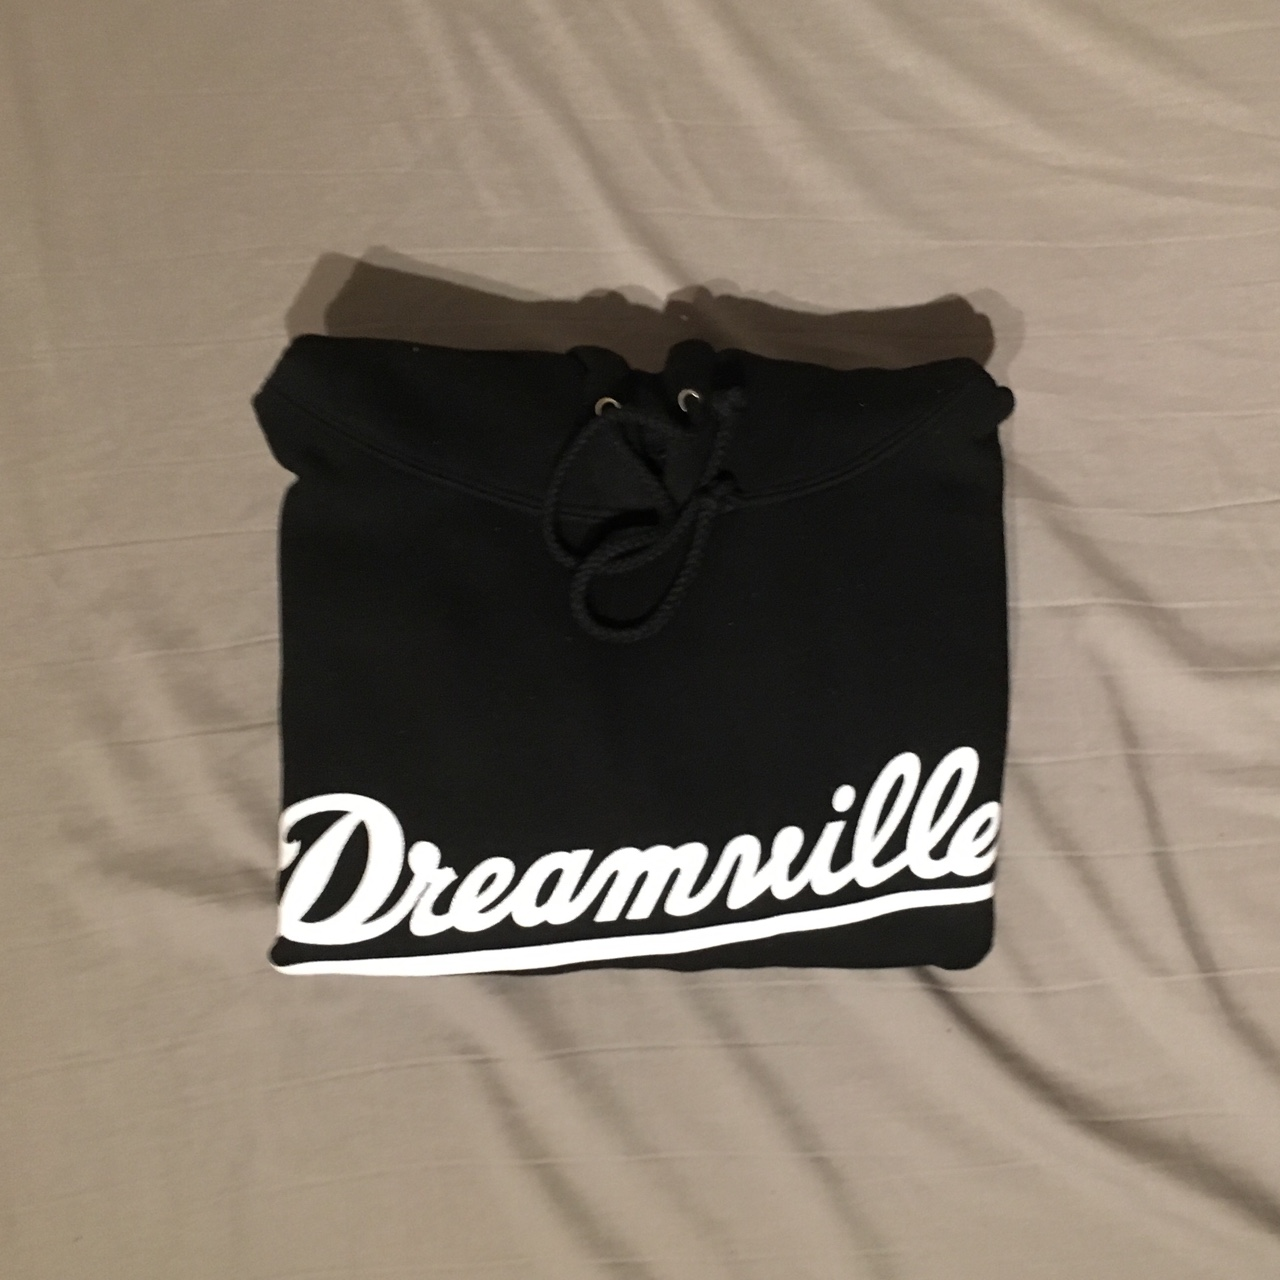 Dreamville (J Cole) Logo Hoodie Black Medium Depop